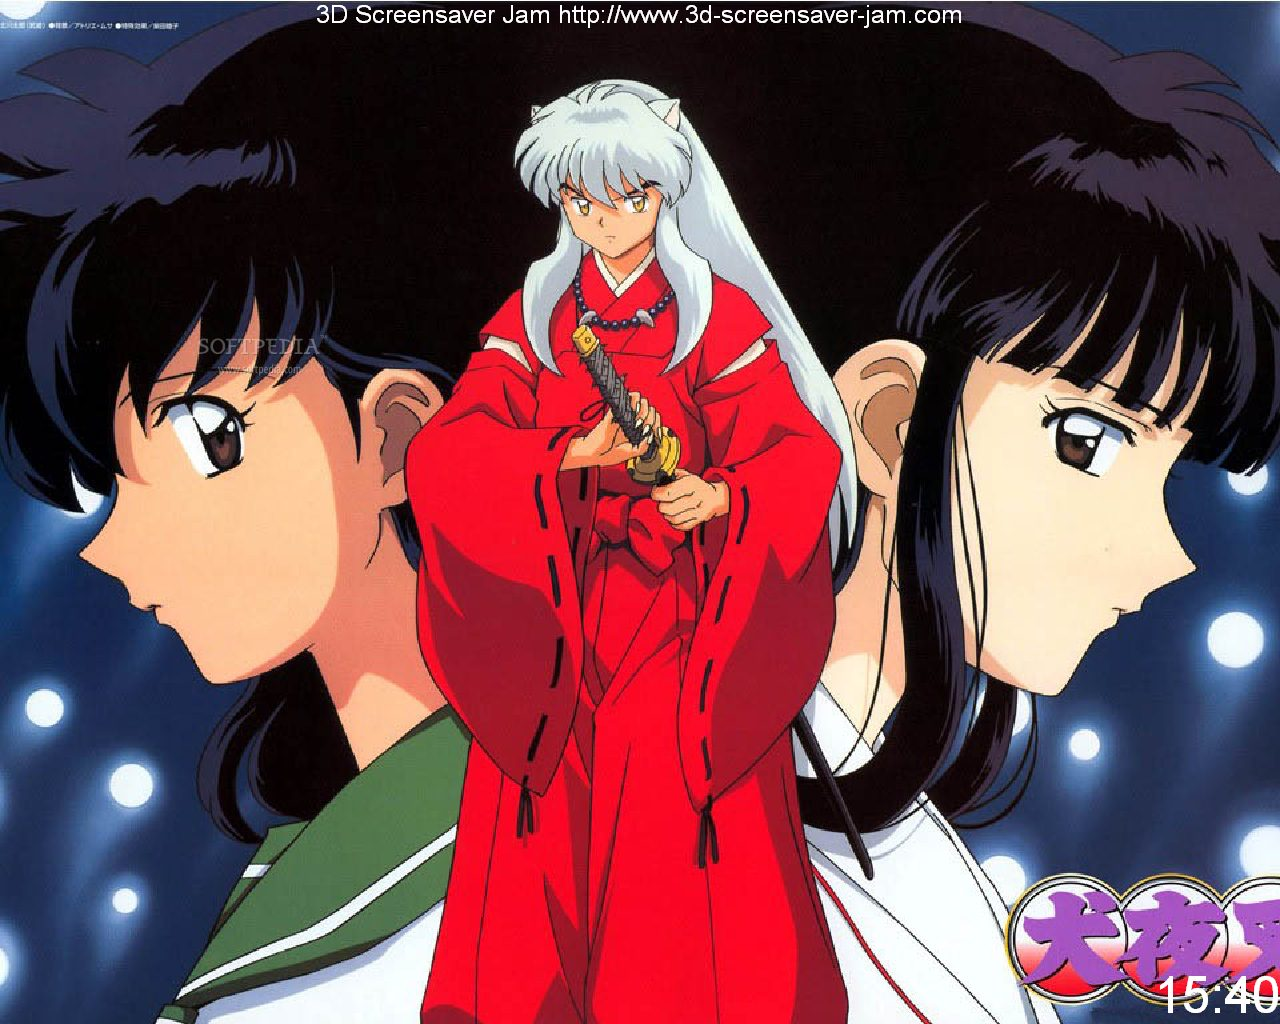 Inuyasha (Audio Latino) MediaFire